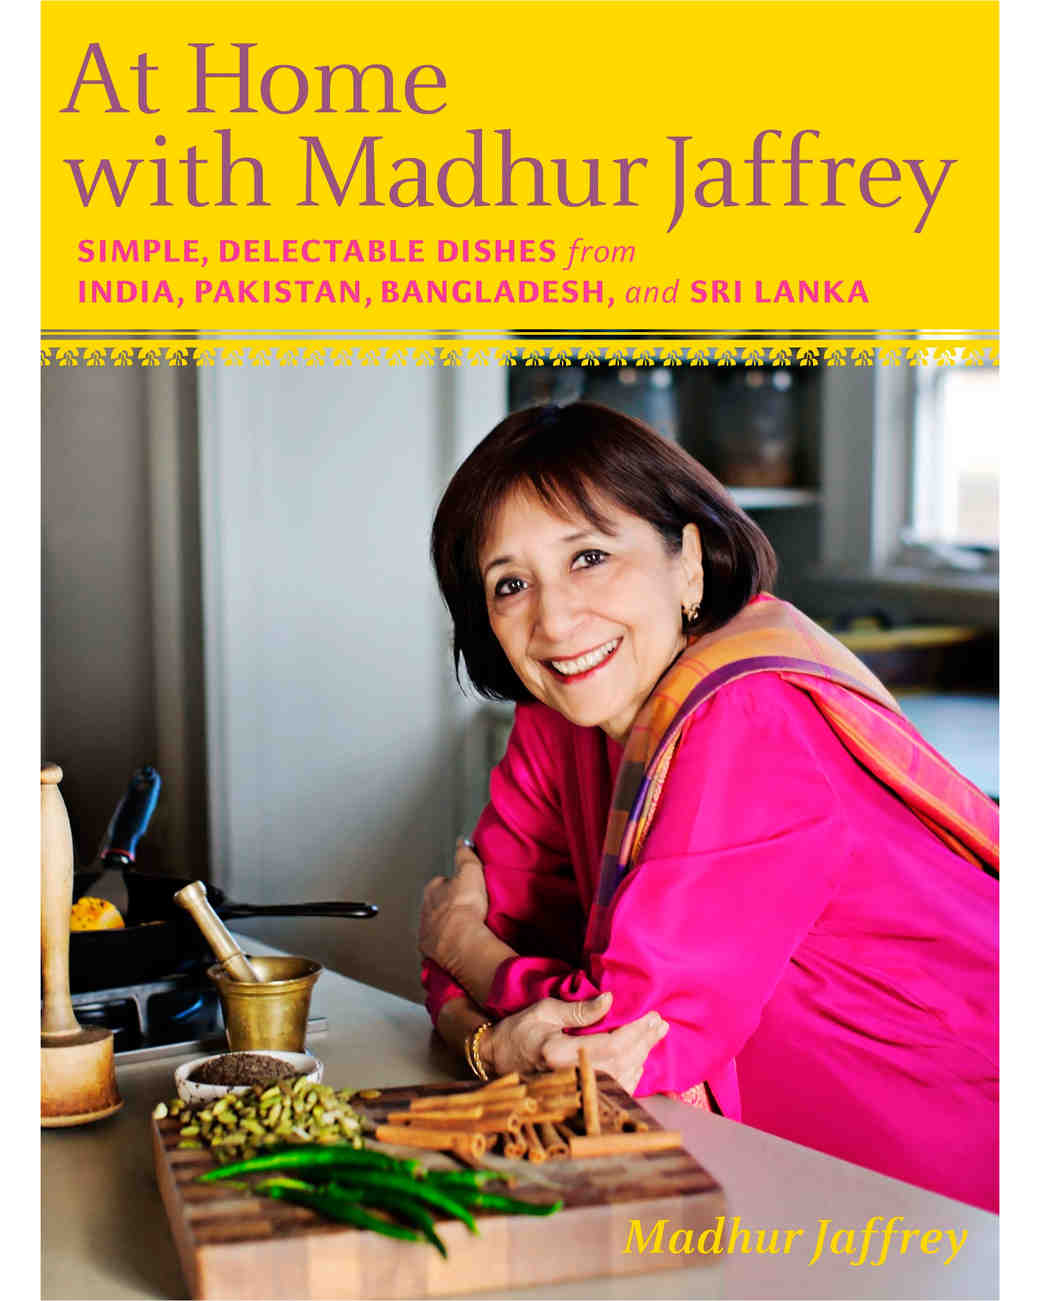 newlywed-cookbooks-at-home-madhur-jaffrey-1015.jpg